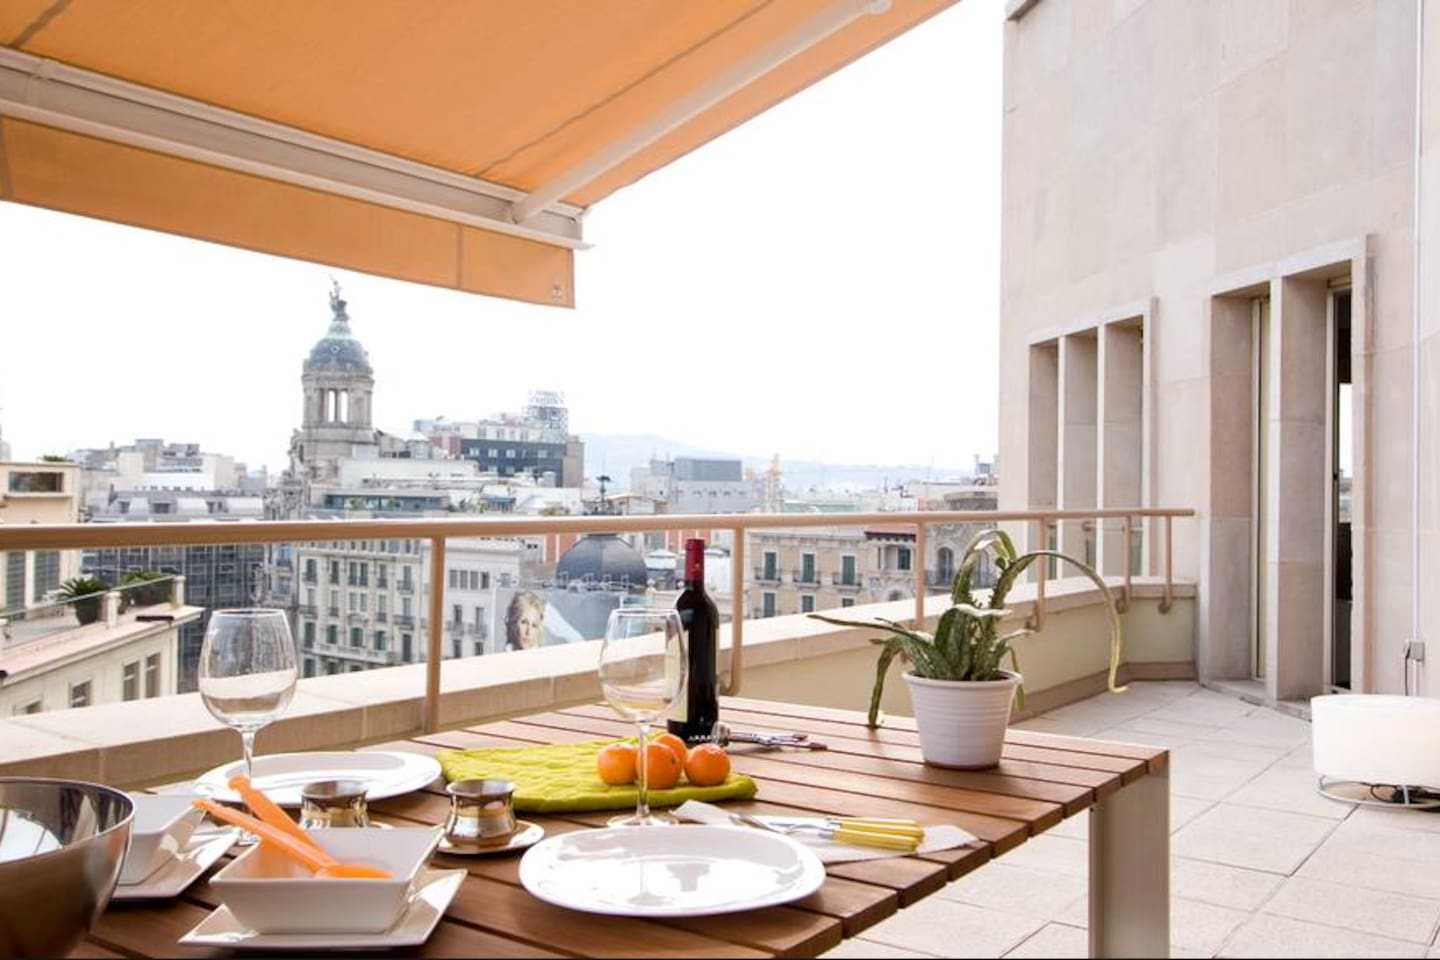 Enjoy the Barcelona skyline from the terrace.